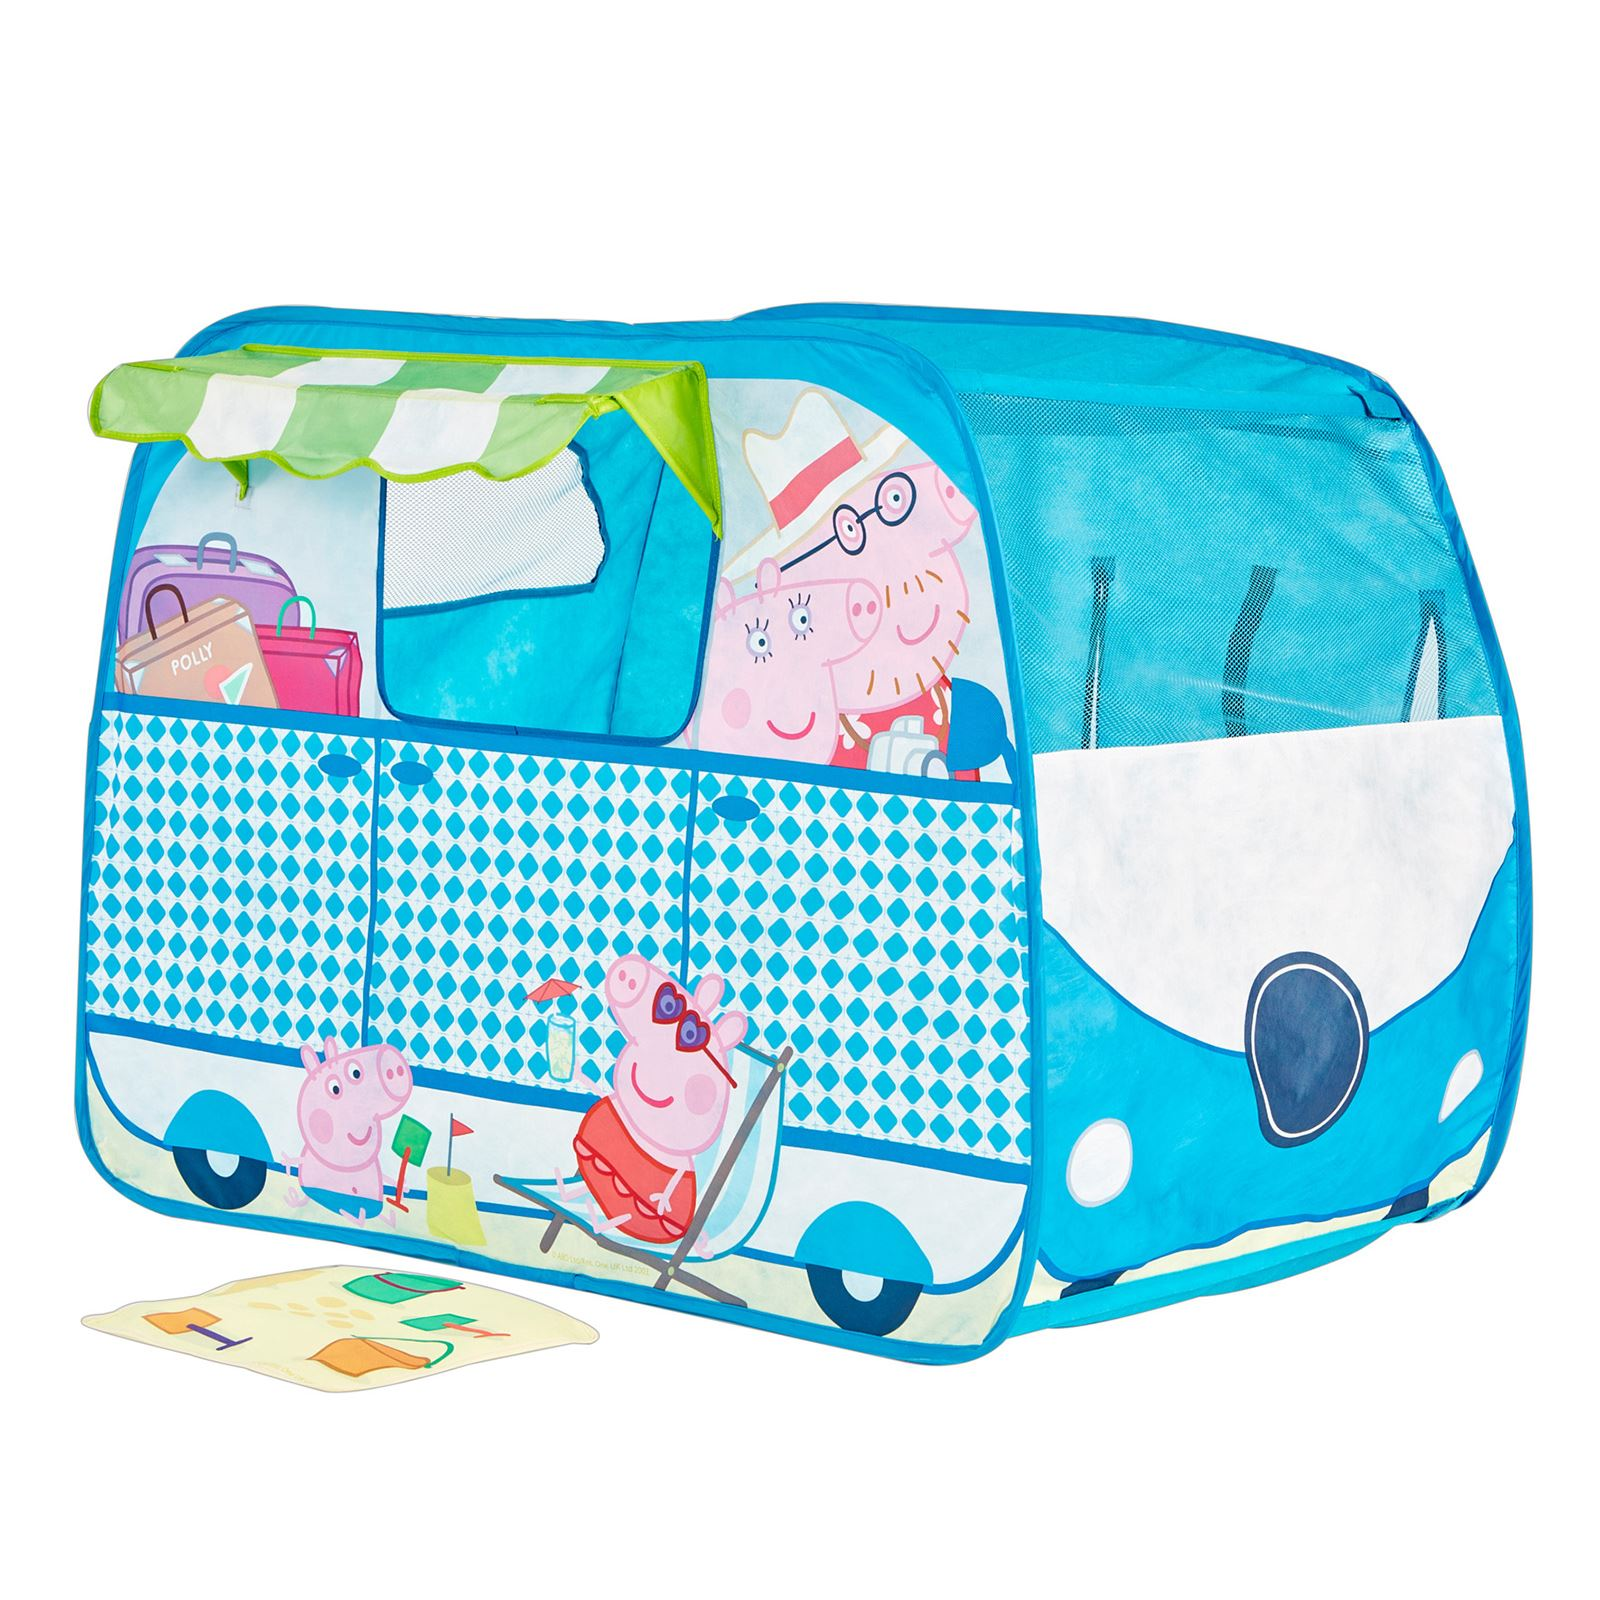 peppa pig wohnwagen pop up rollenspiel blau zelt kinder. Black Bedroom Furniture Sets. Home Design Ideas